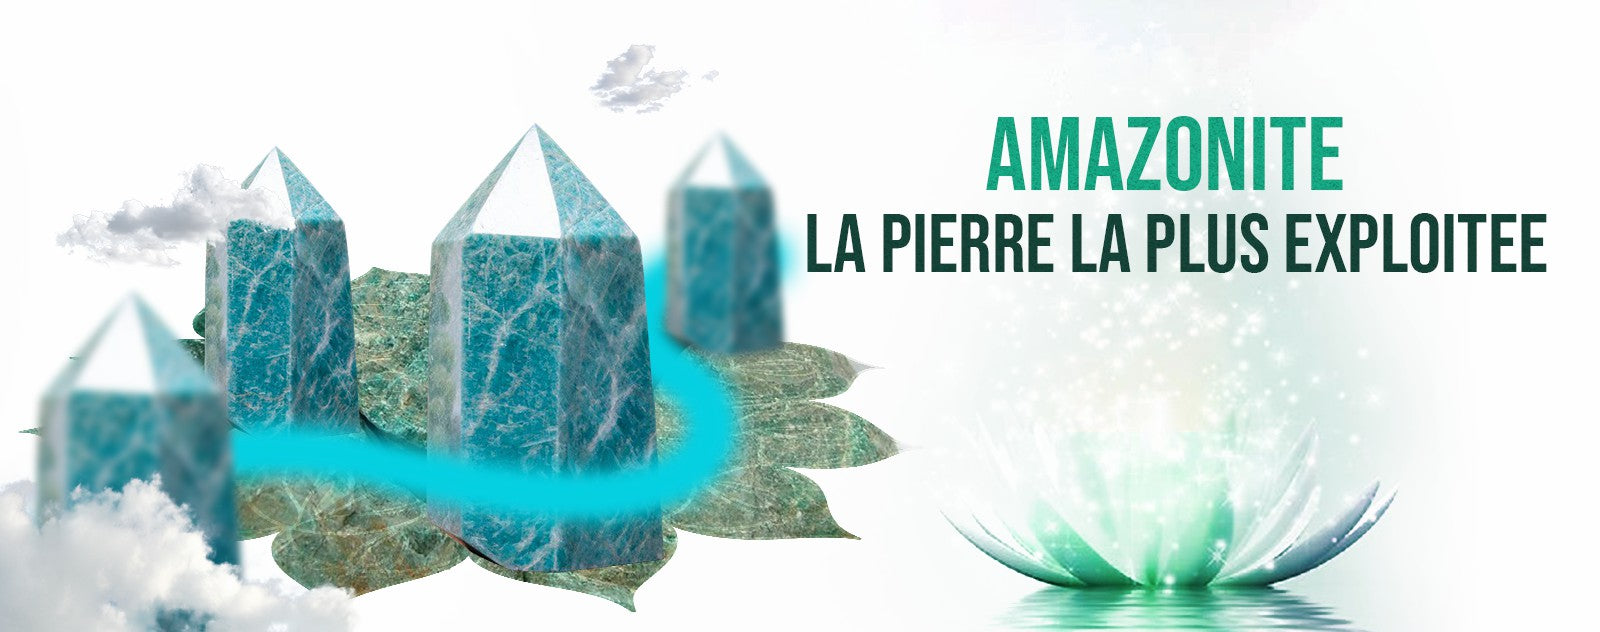 pierre amazonite